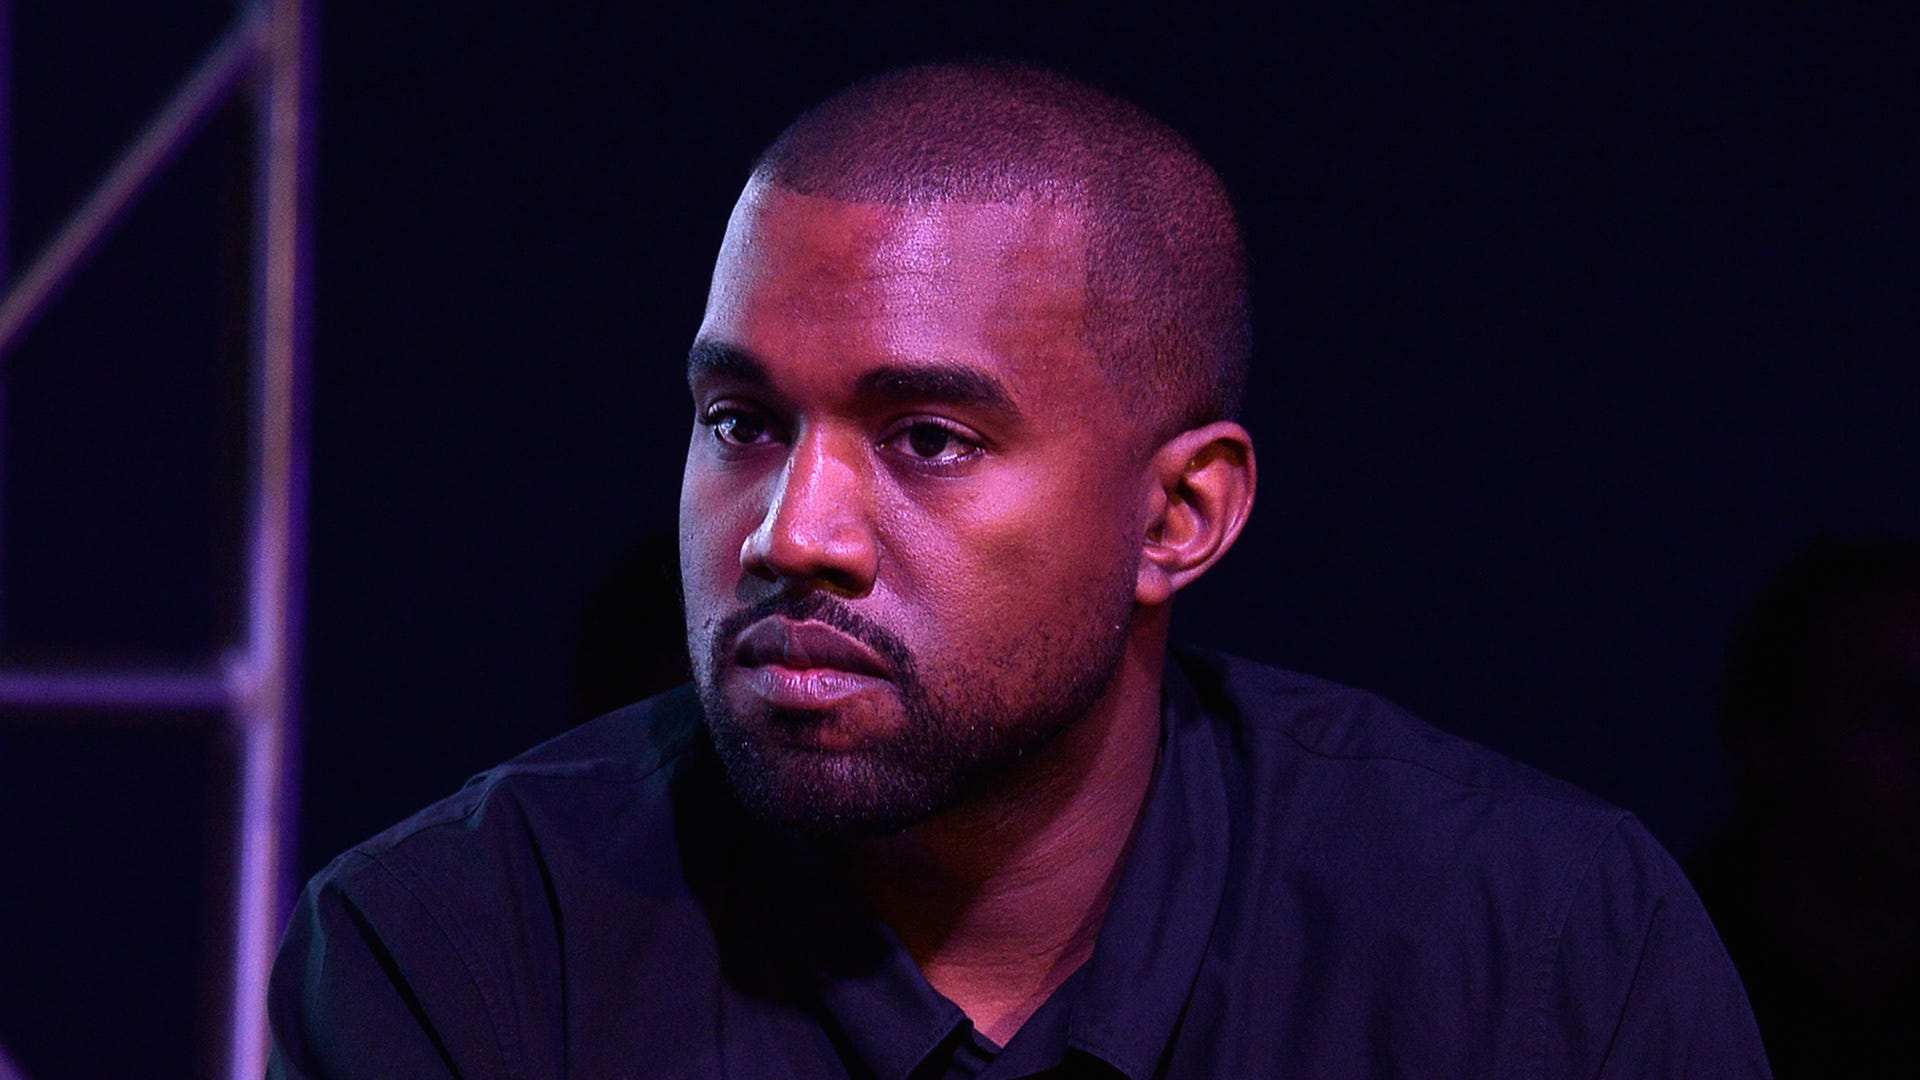 Kanye West has plans on opening up a new school, the Donda Academy